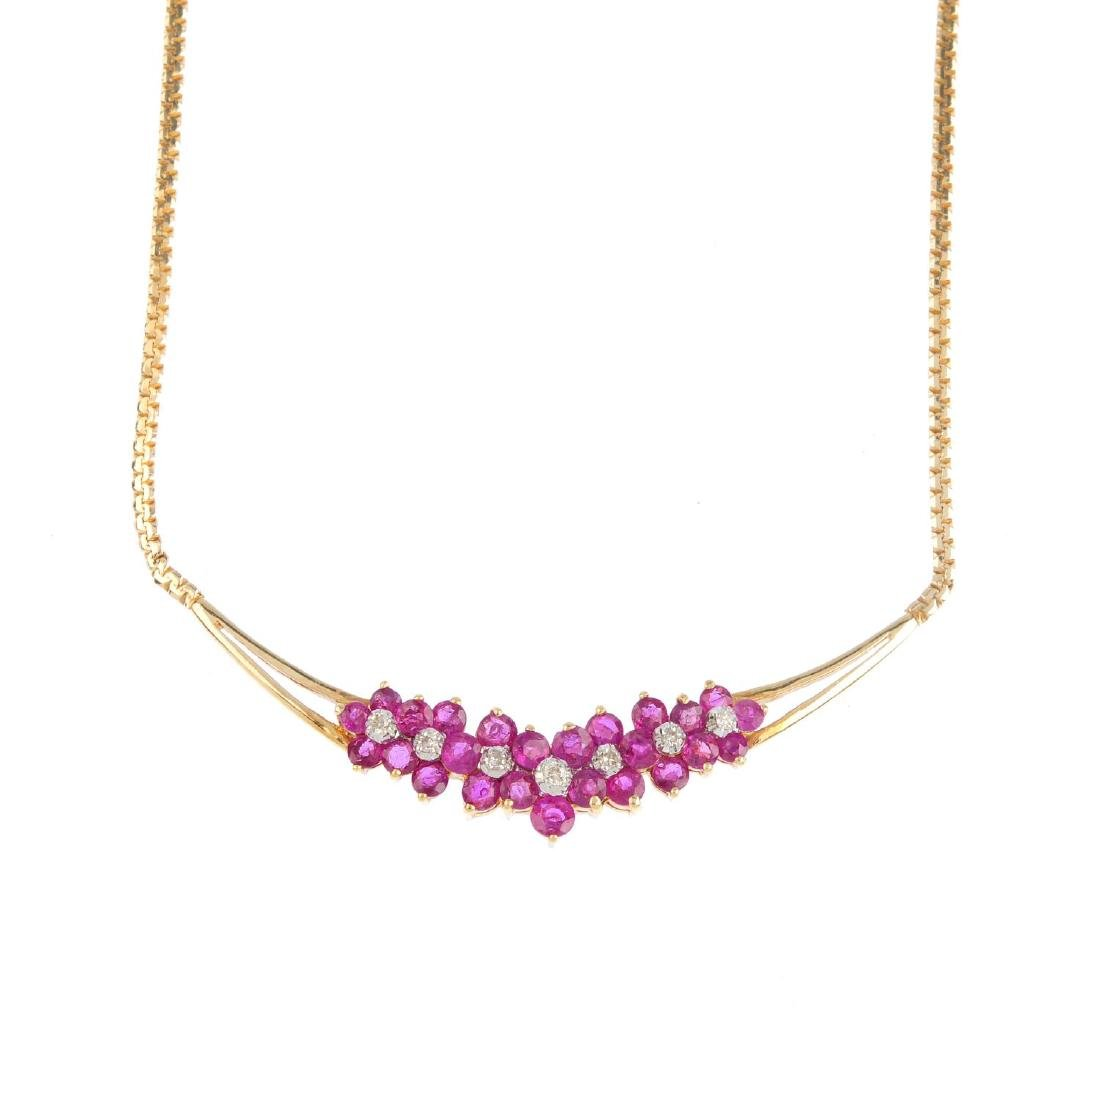 A ruby and diamond necklace. The brilliant-cut diamond